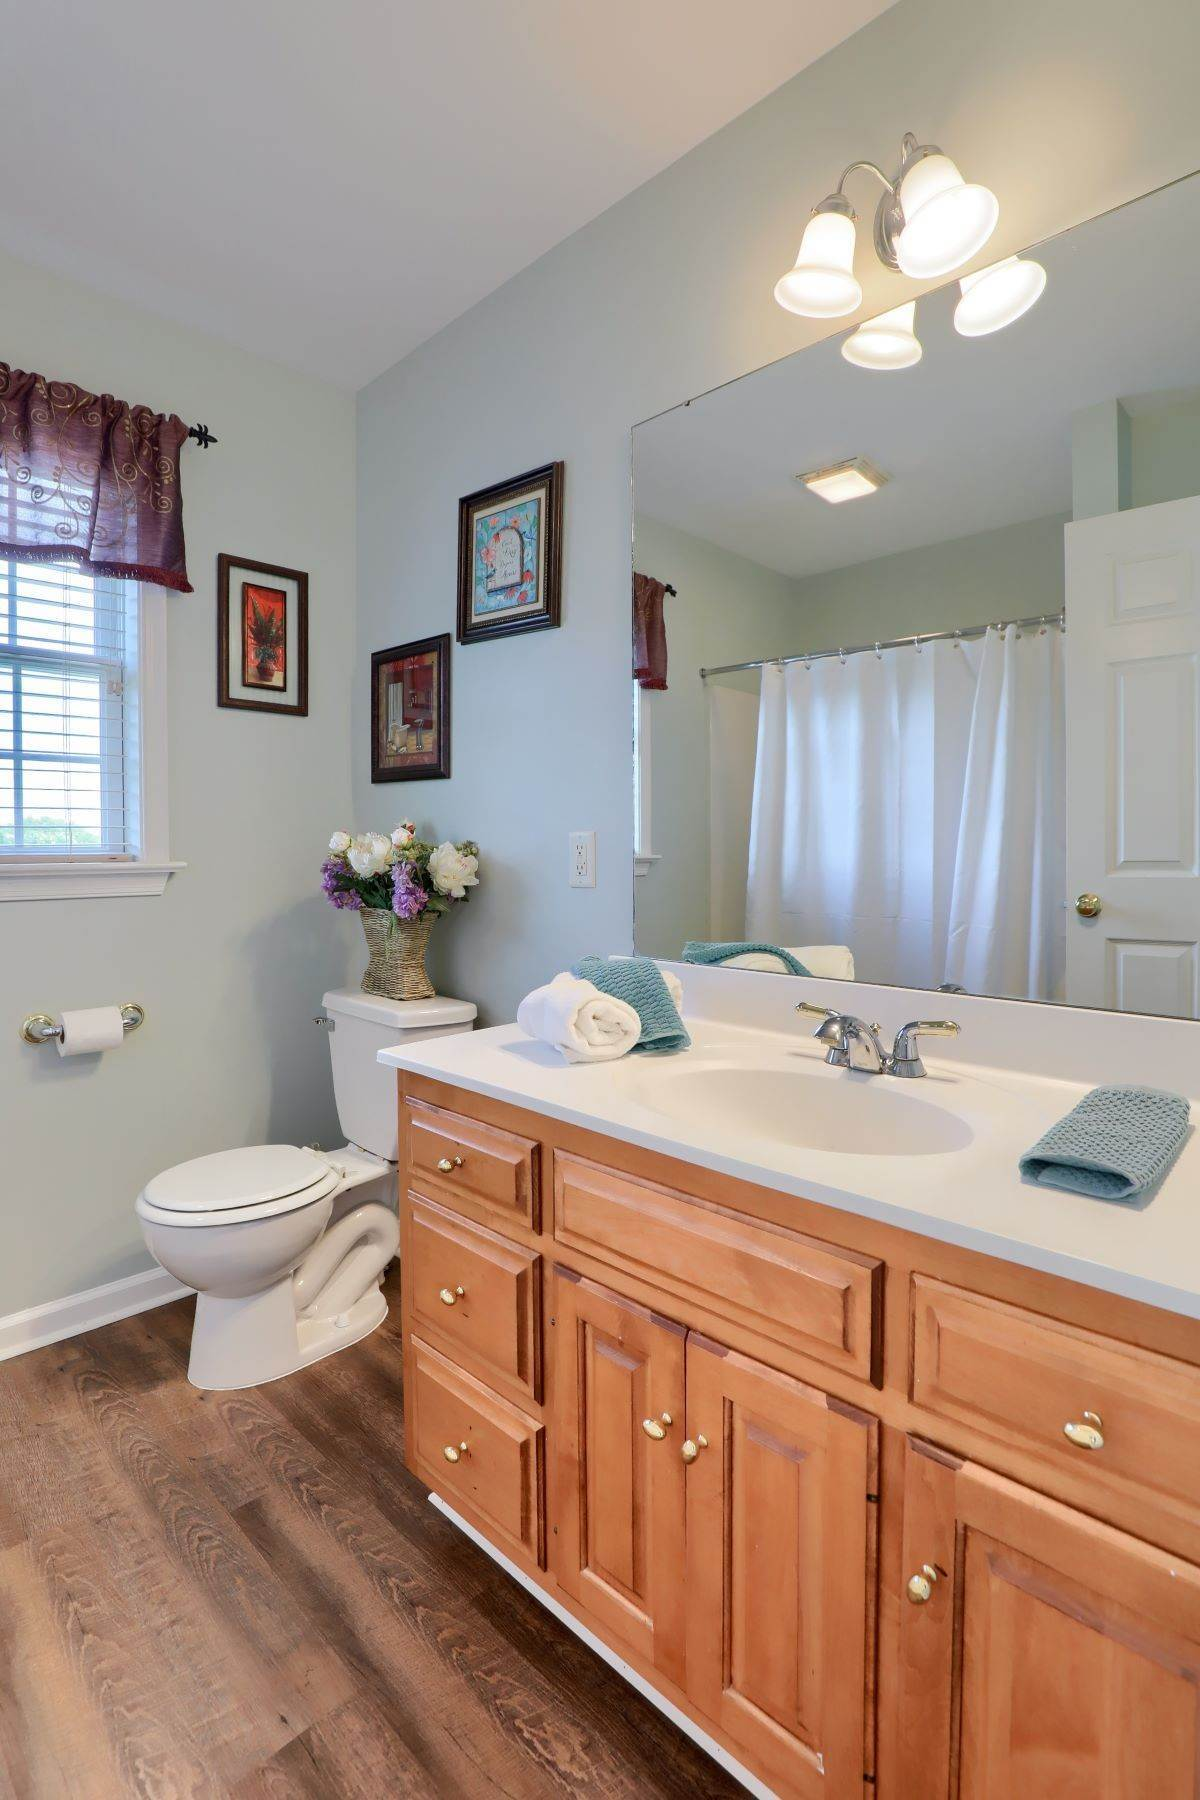 26. Single Family Homes for Sale at 18 Jared Place Lititz, Pennsylvania 17543 United States